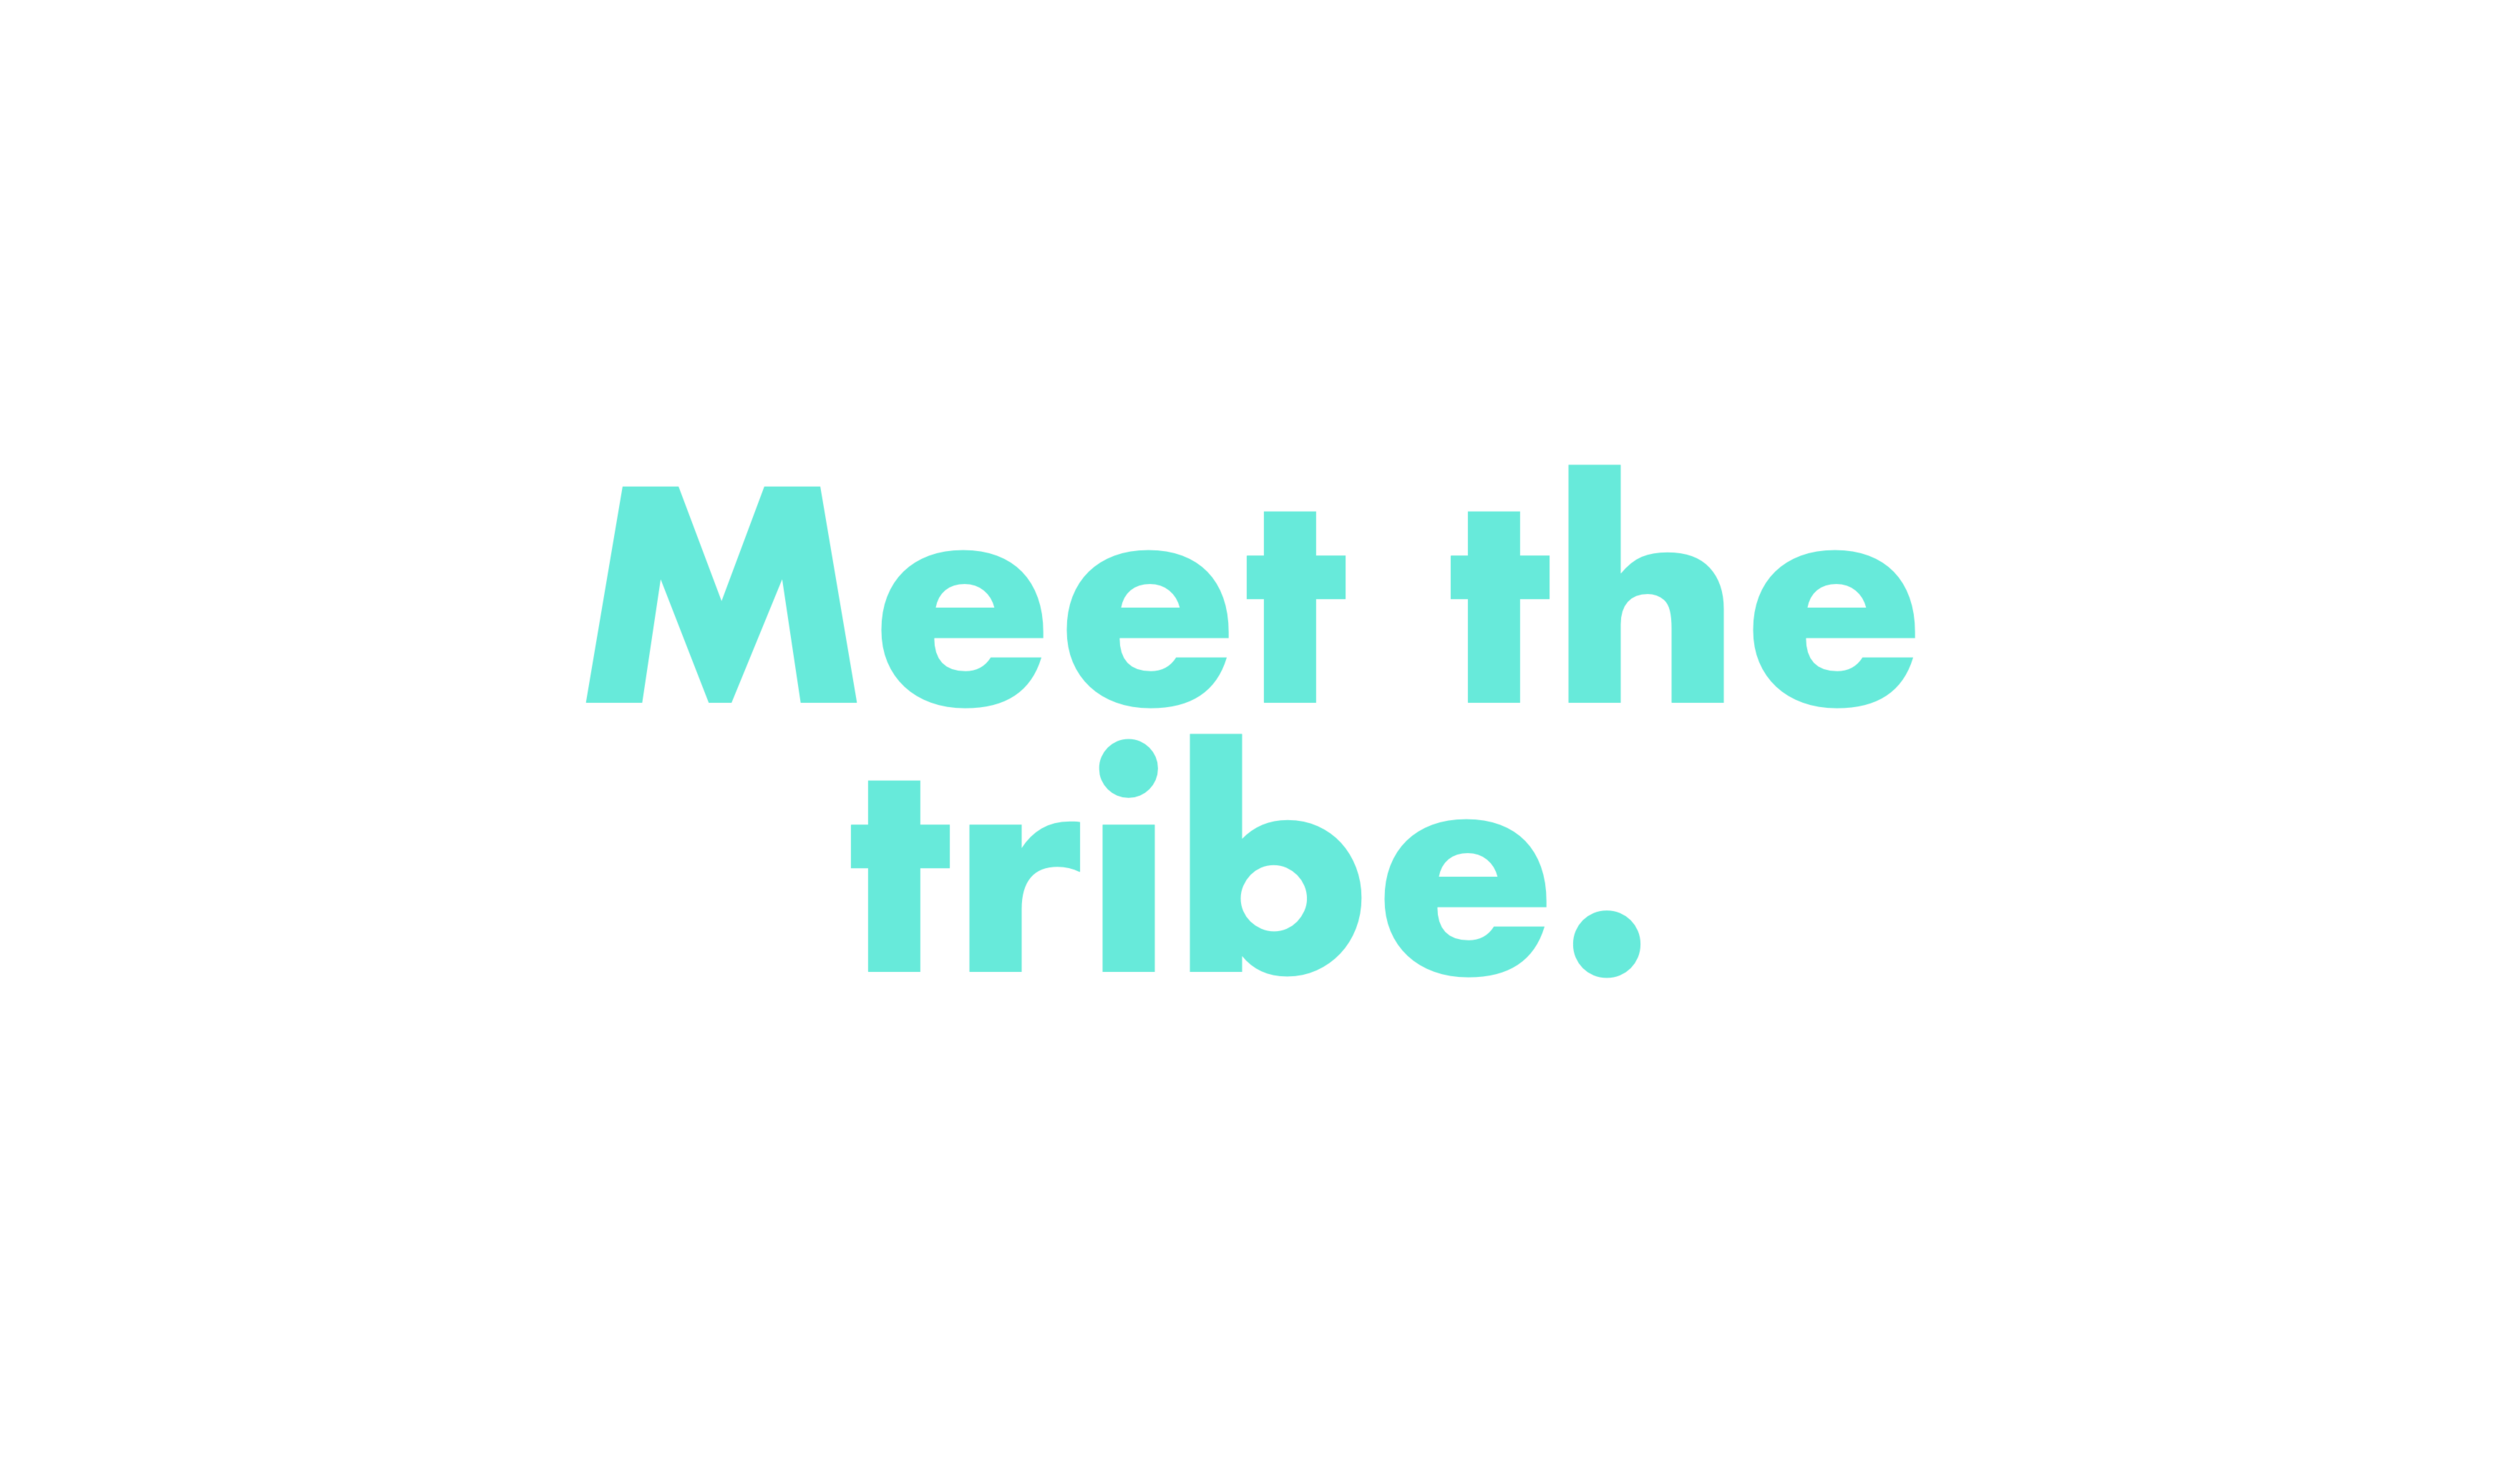 meet_the_tribe.png